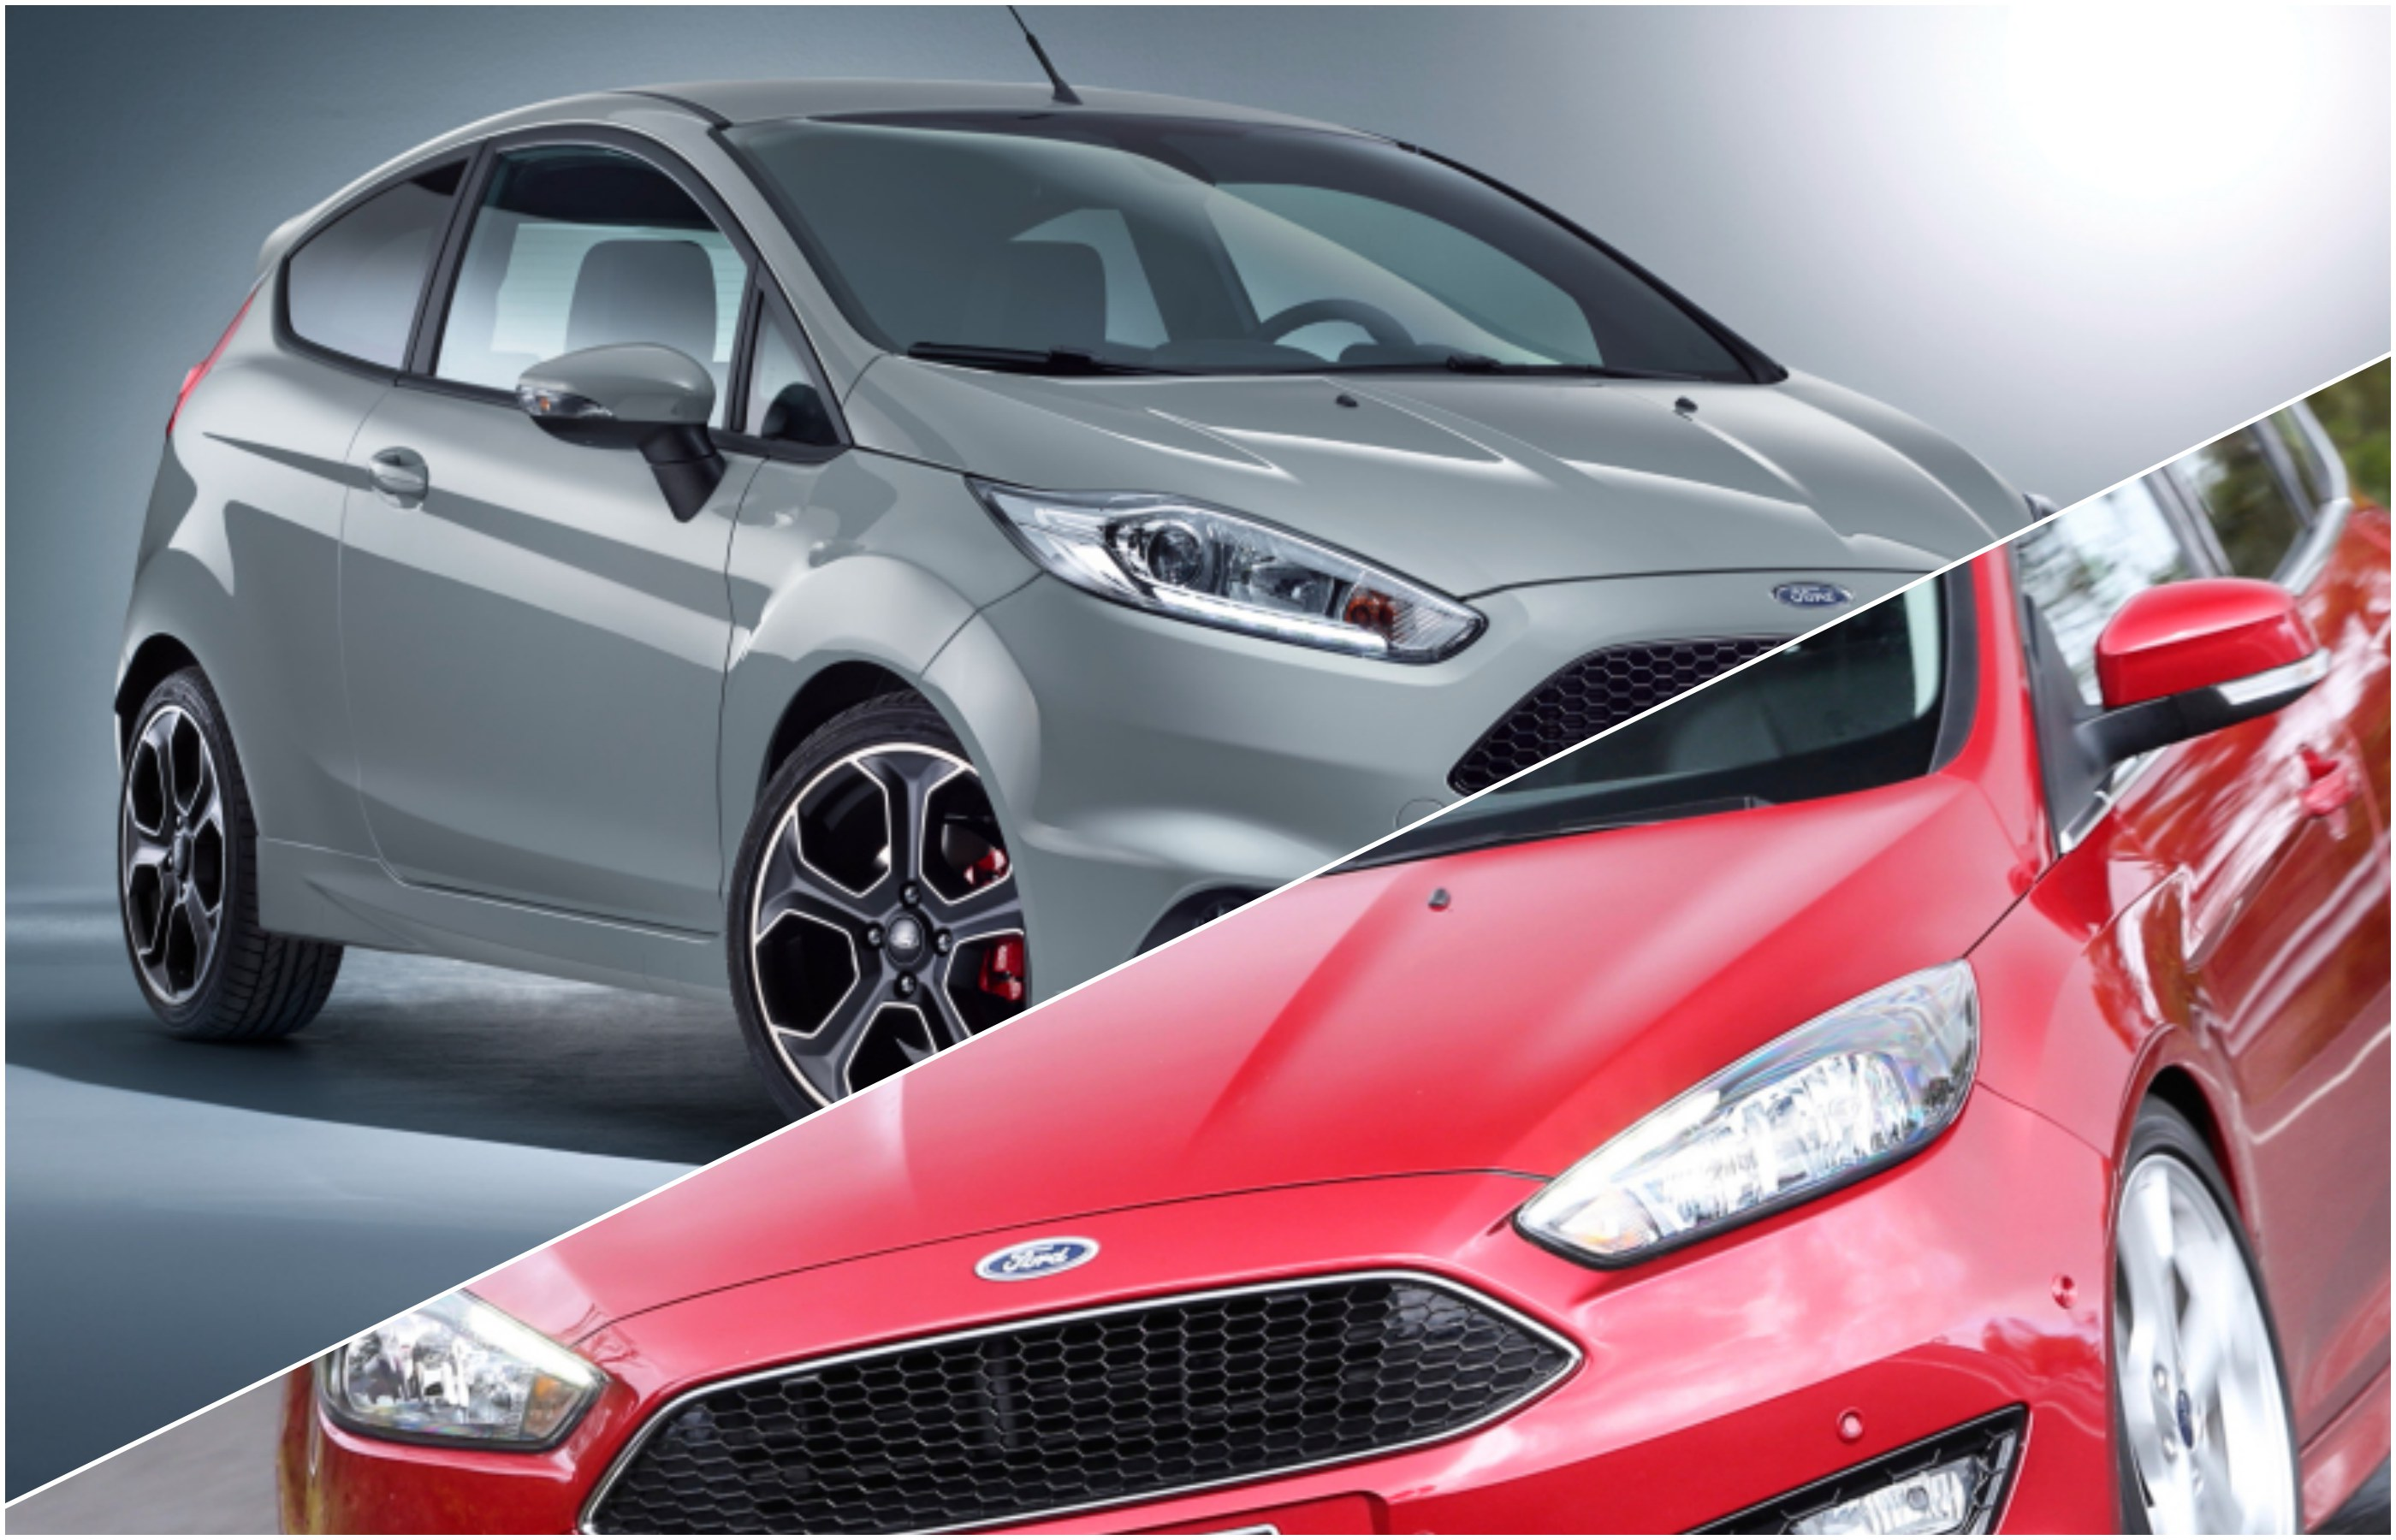 news ford updates oz focus fiesta st new options. Black Bedroom Furniture Sets. Home Design Ideas